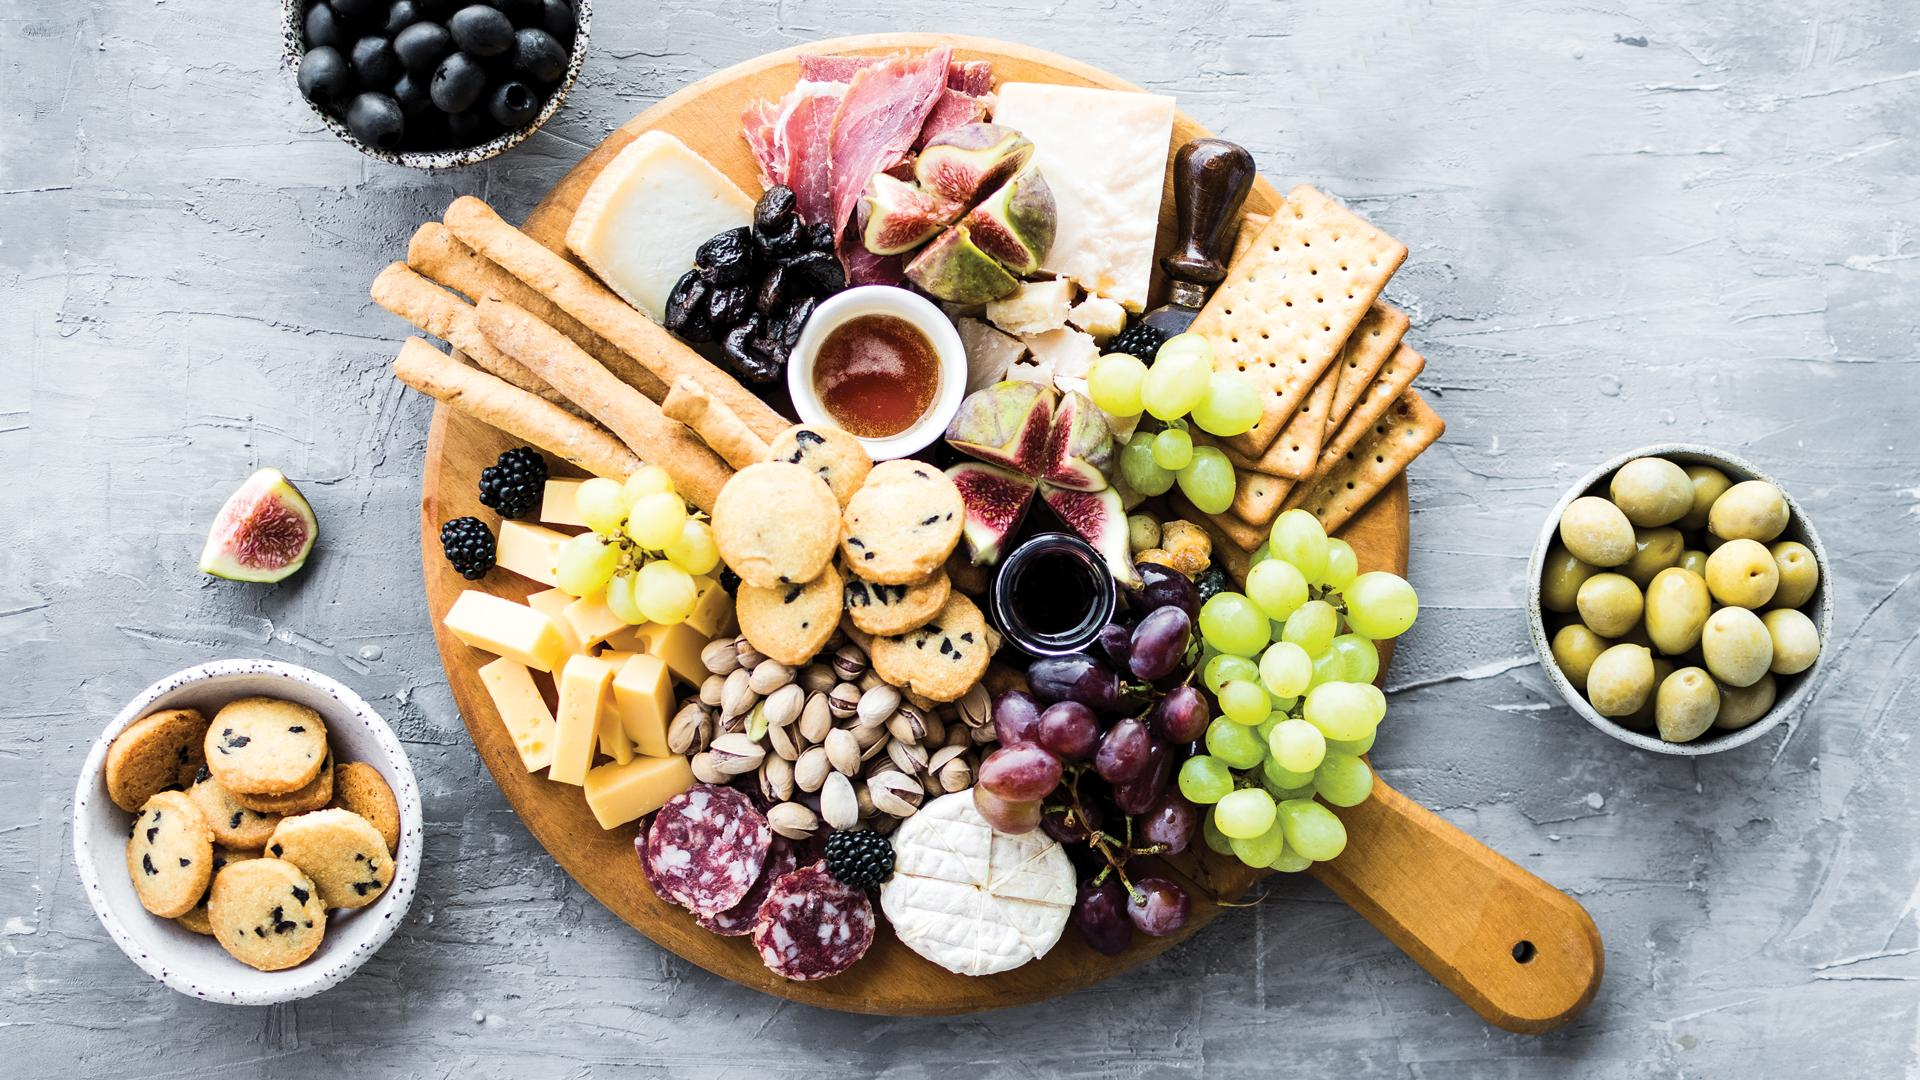 How to make the perfect holiday charcuterie board | Flat lay of charcuterie board with meat, cheese and garnishes